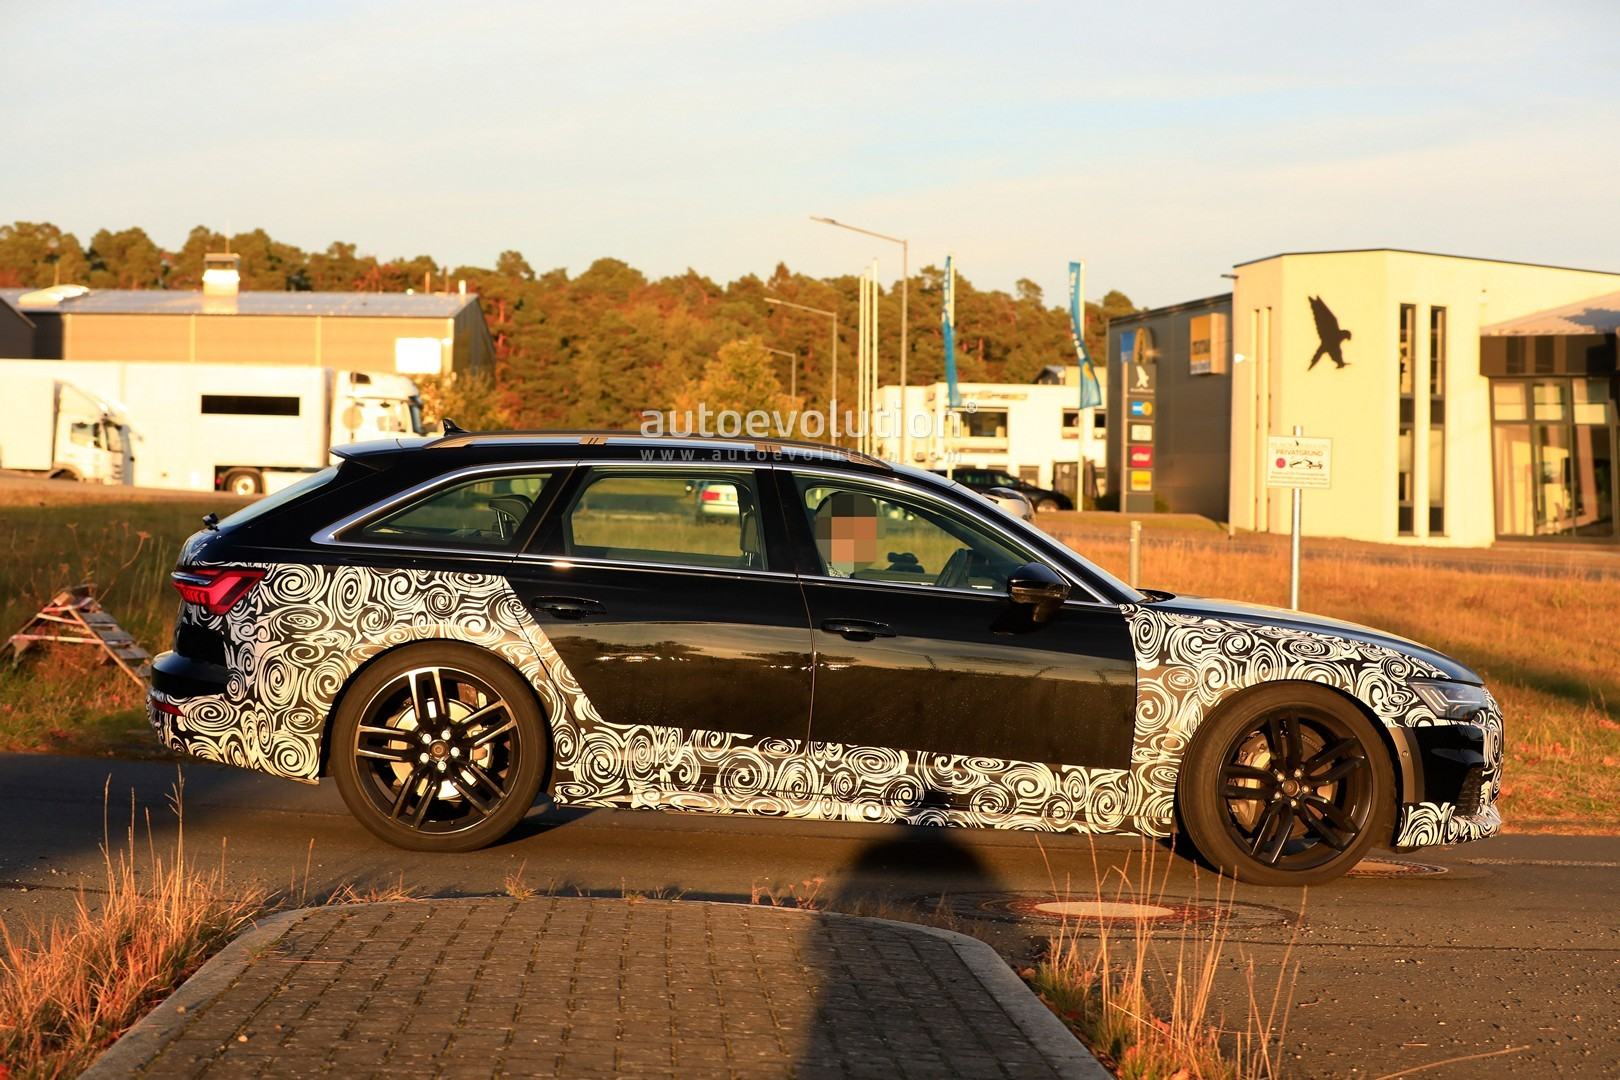 2017 - [Audi] A6 Berline & Avant [C8] - Page 10 2020-audi-a6-allroad-quattro-spied-testing-with-mild-off-road-body-kit_6